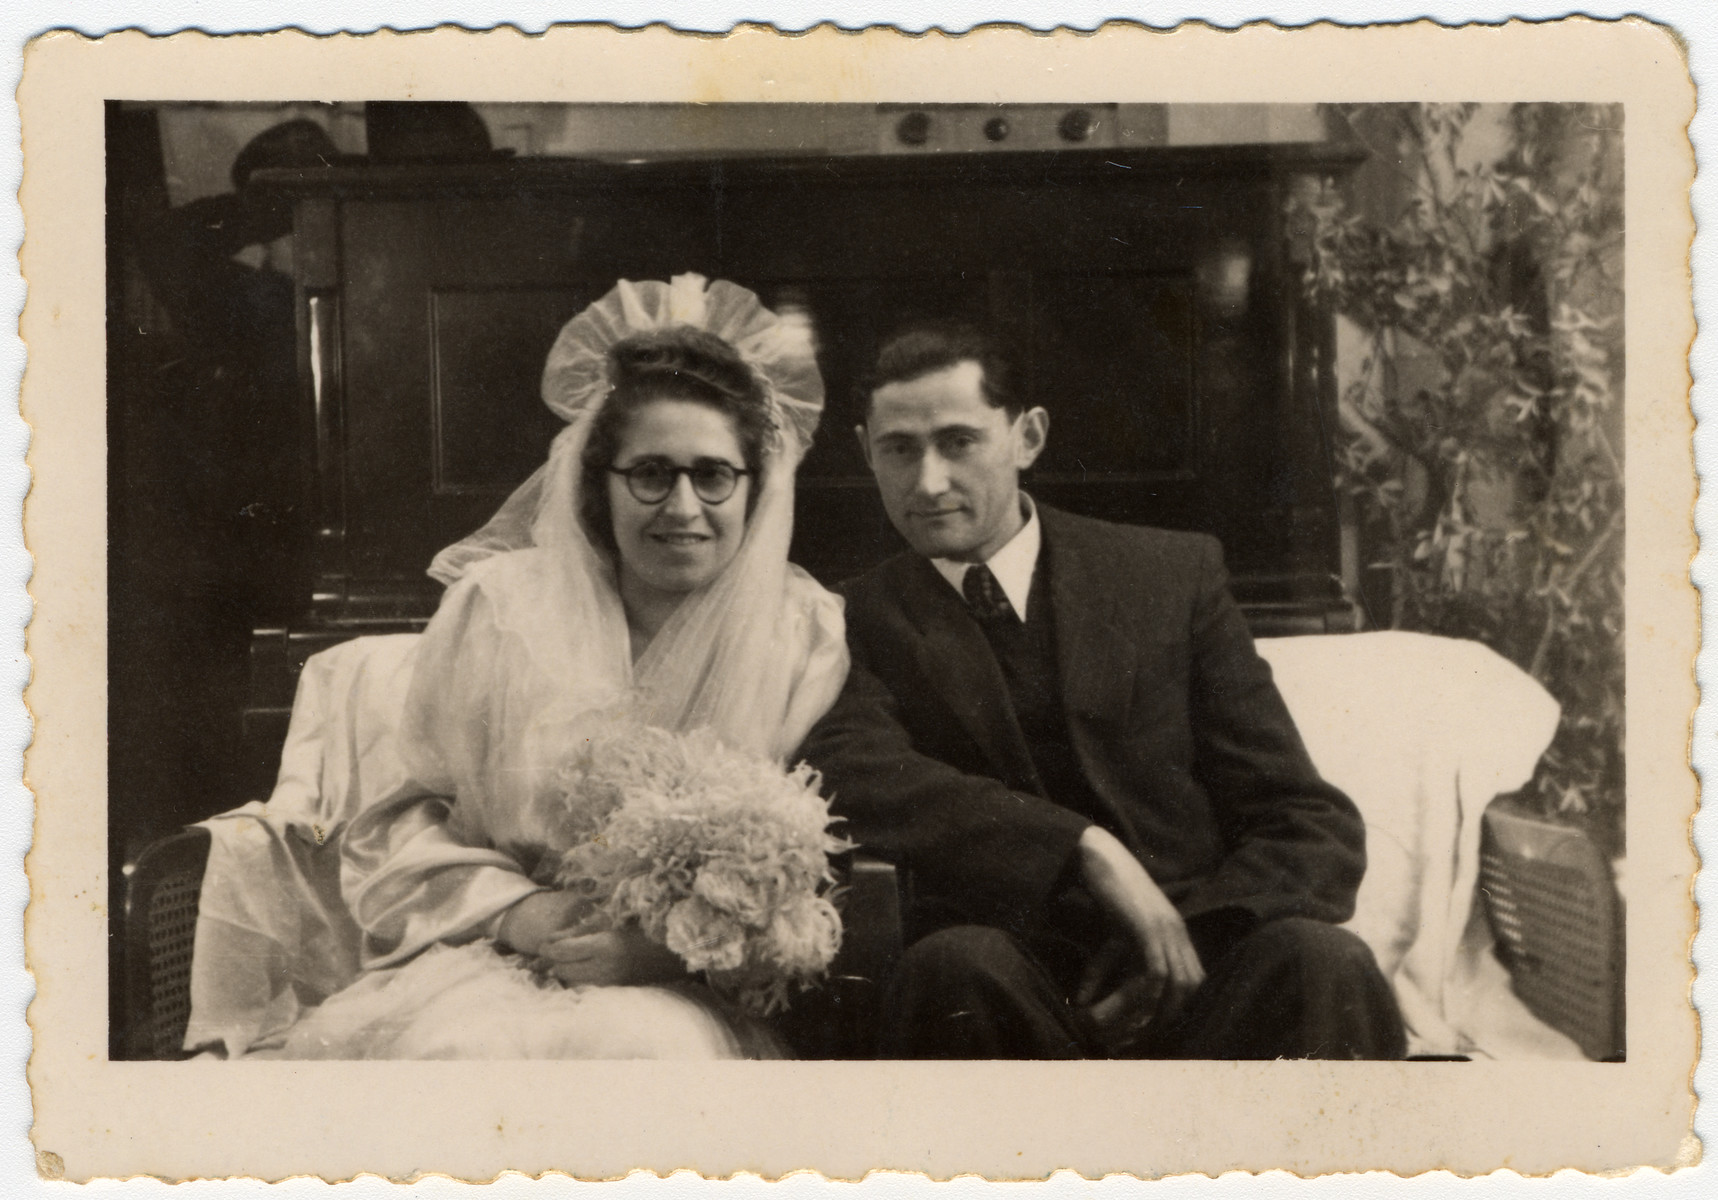 Close-up wedding portrait of a Jewish couple in the Landsberg displaced persons' camp.  Pictured are Moshe and Malka Herskovitz.